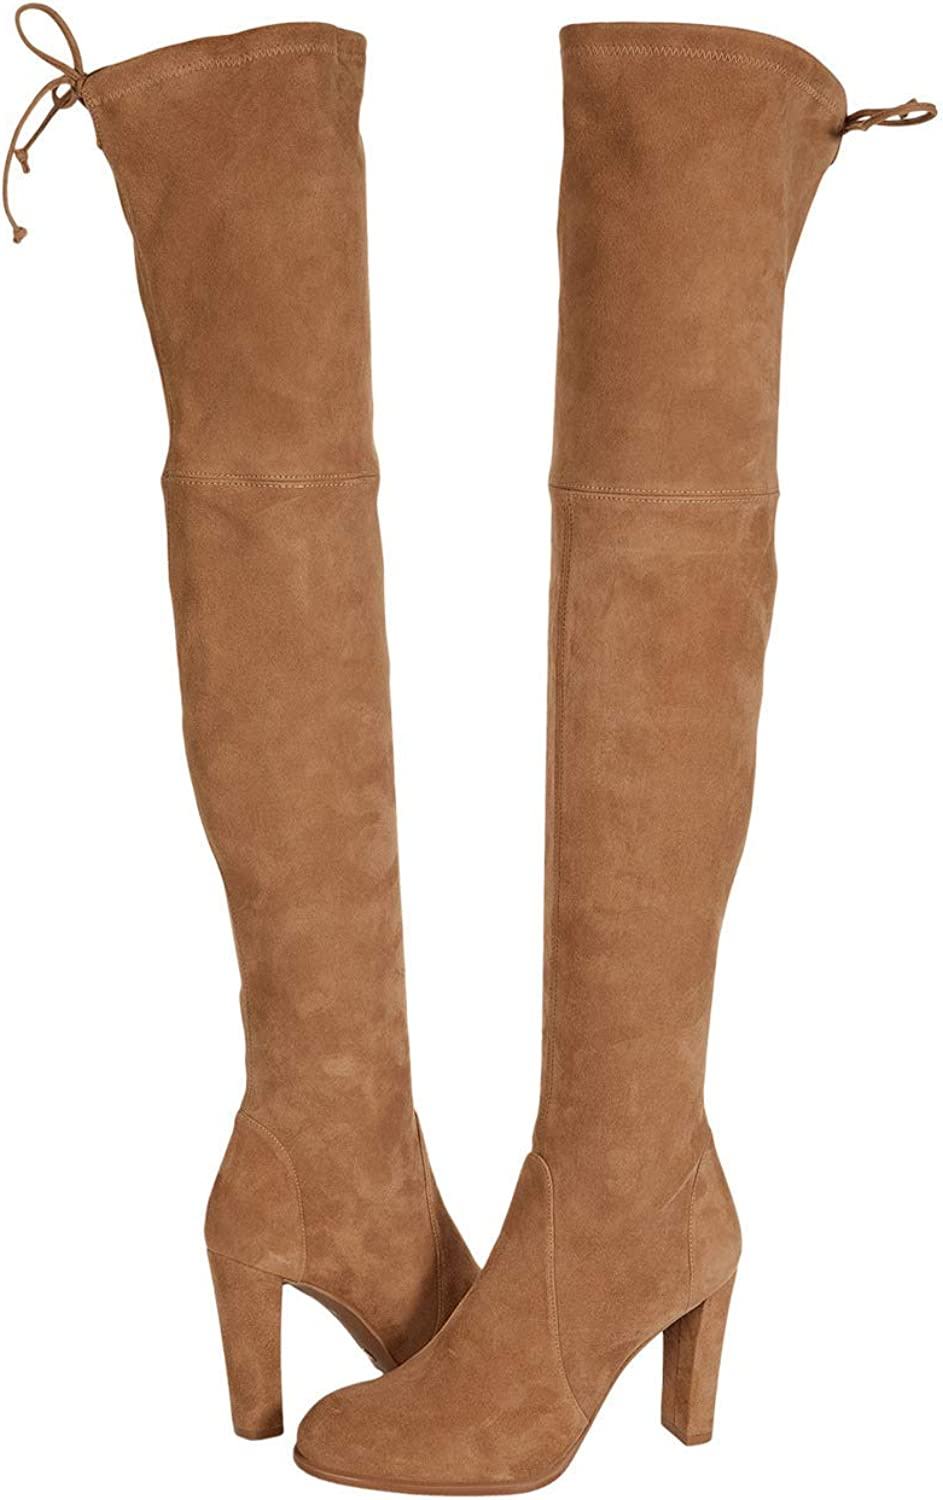 Highland Over-the-Knee Boot